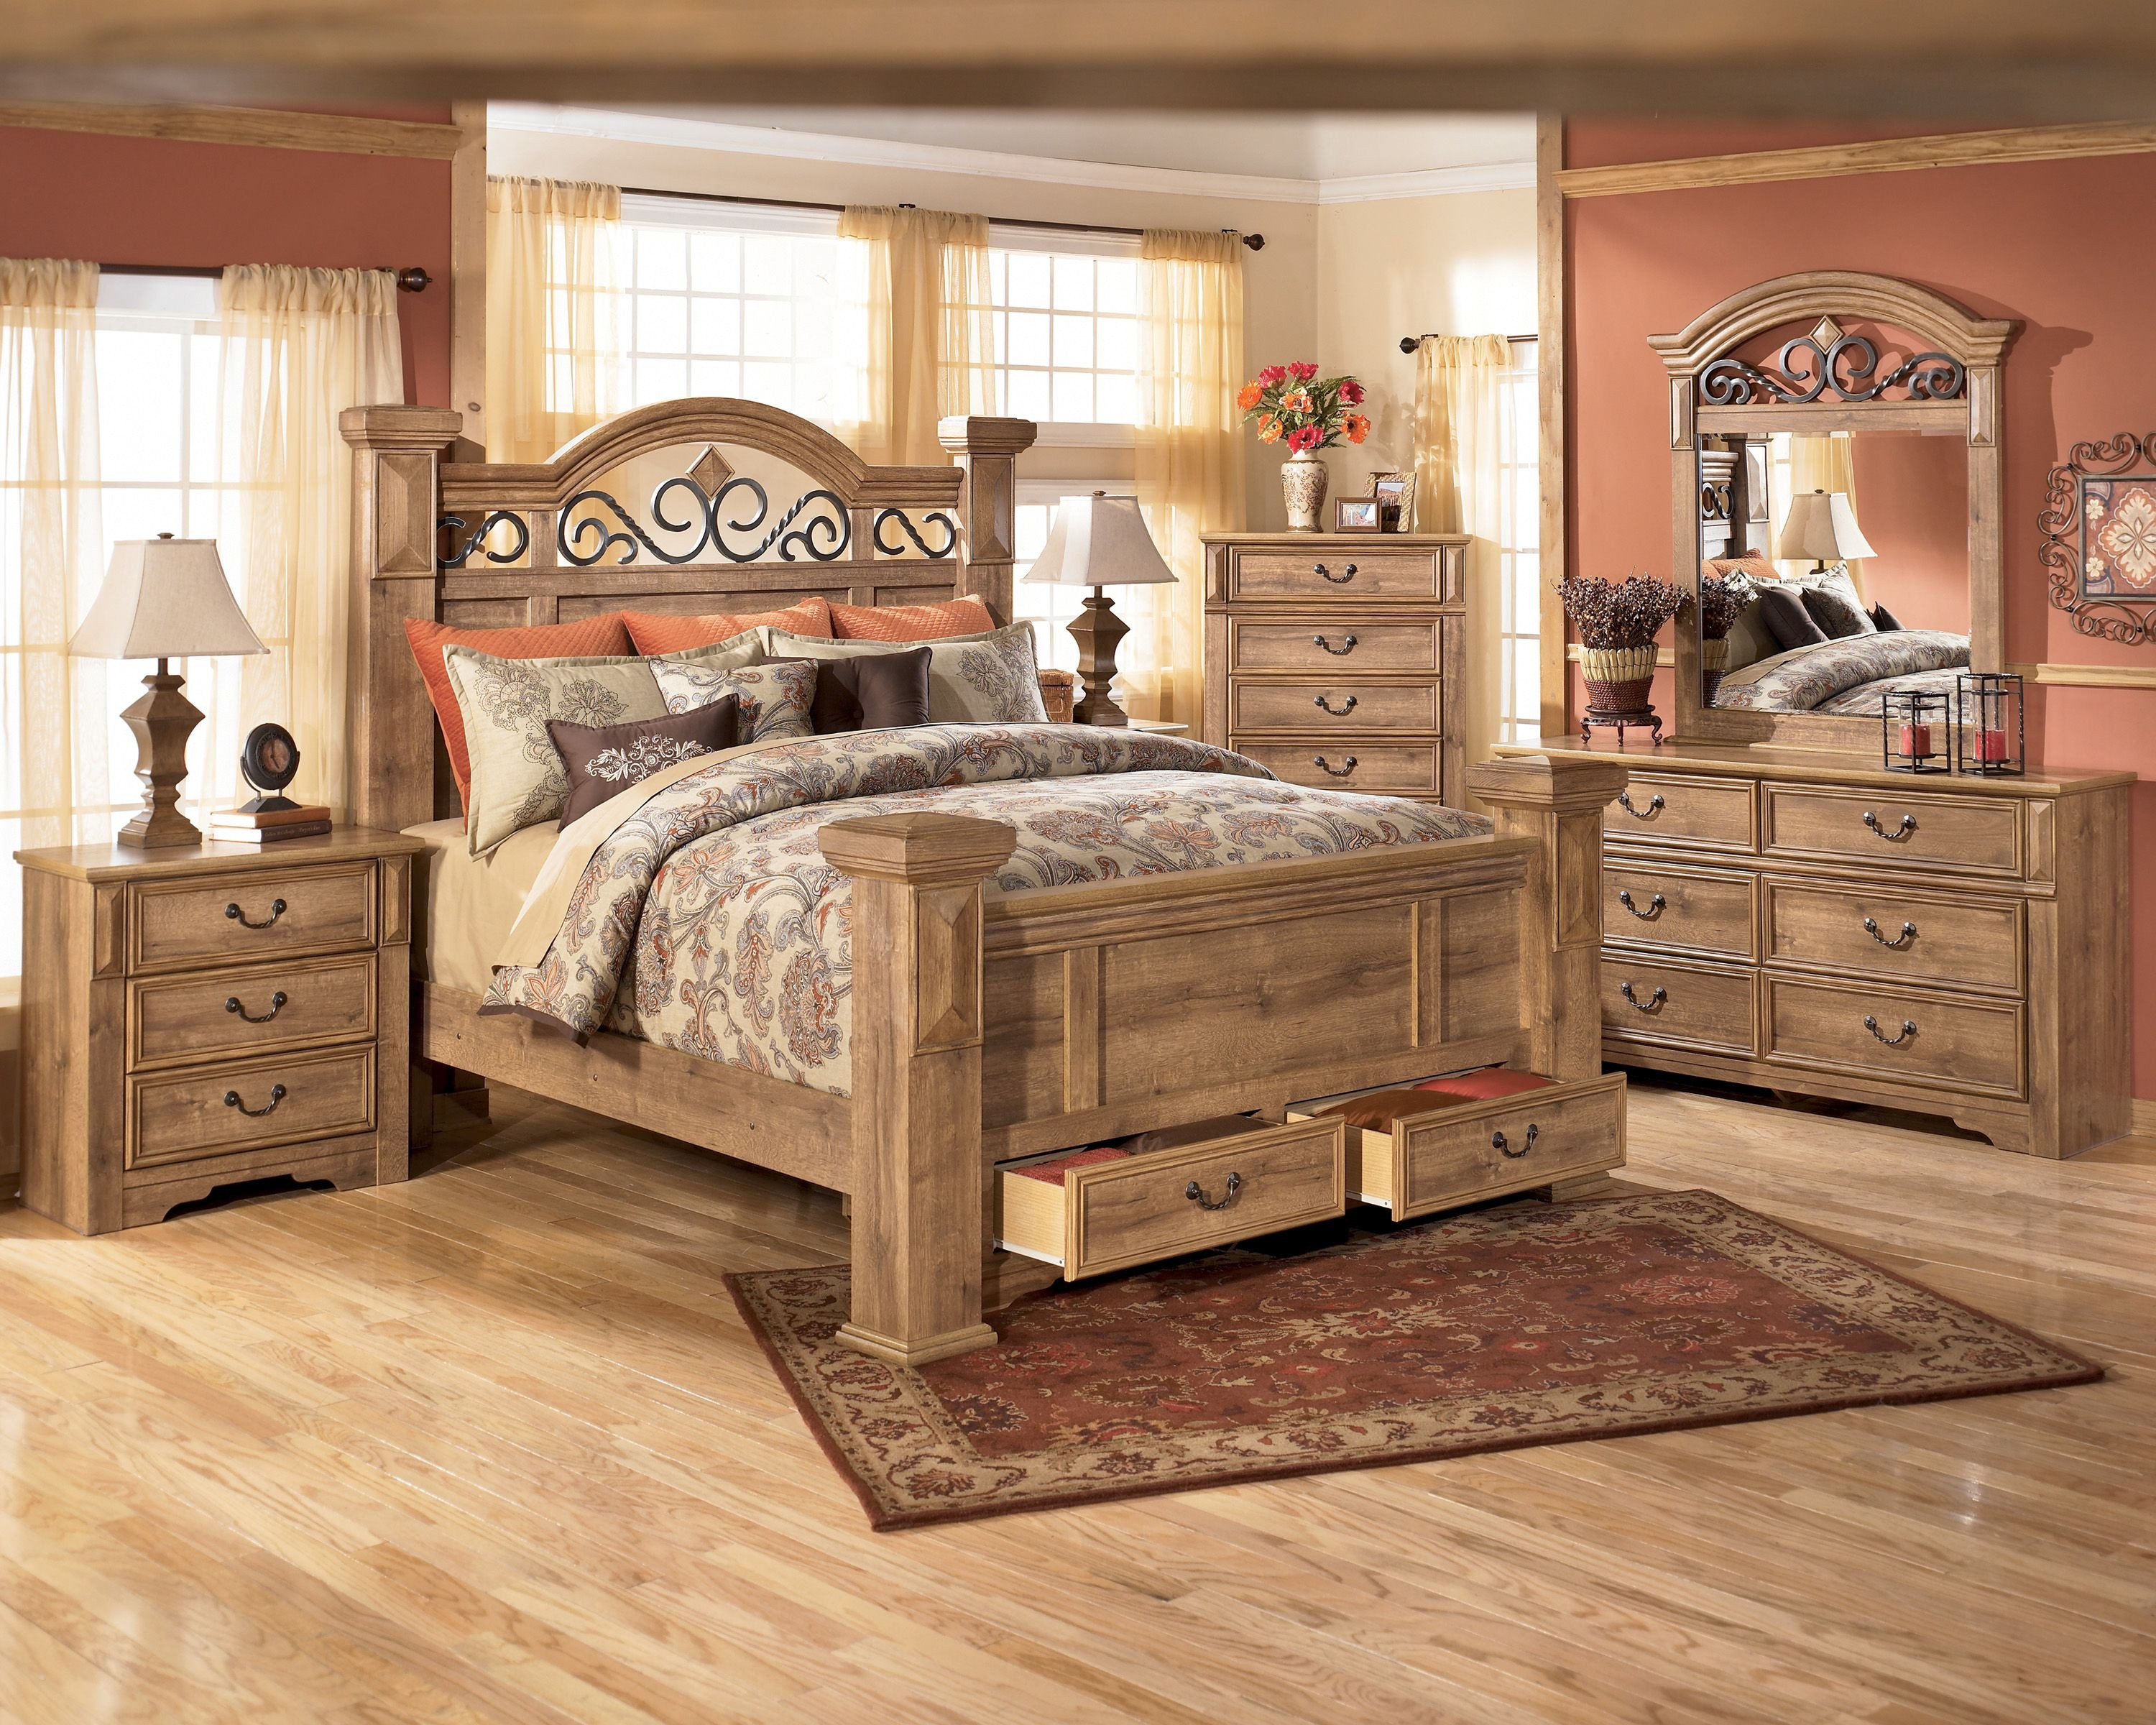 Modern King Size Bedroom Set Luxury Awesome Awesome Full Size Bed Set 89 Home Decorating